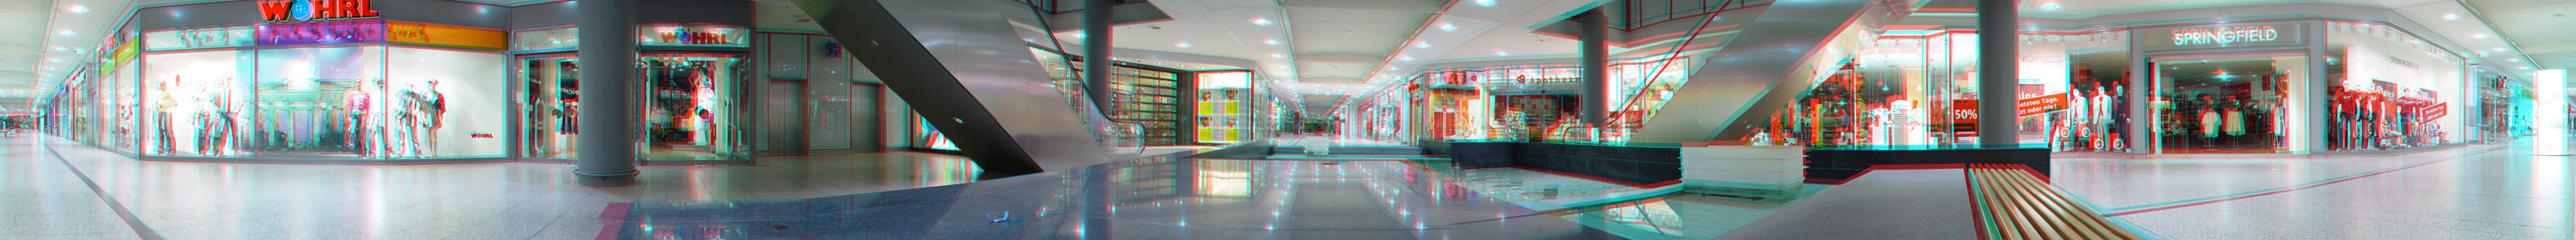 360°Stereo-Panorama (Anaglyphe aus 24 Fotos)